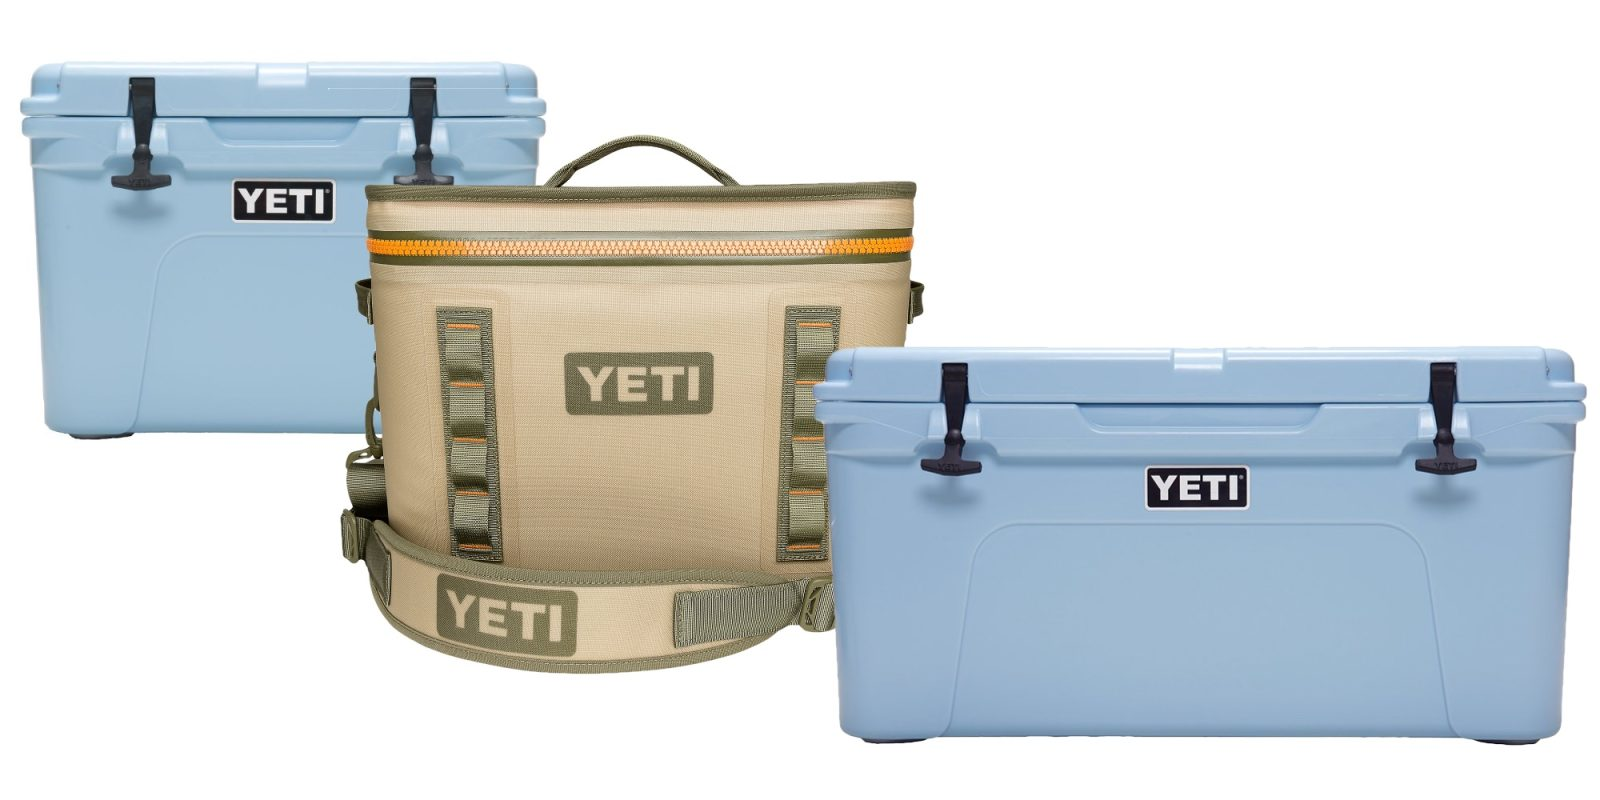 Prep for your next tailgate with Prime Day's 30% off YETI Cooler sale from $140